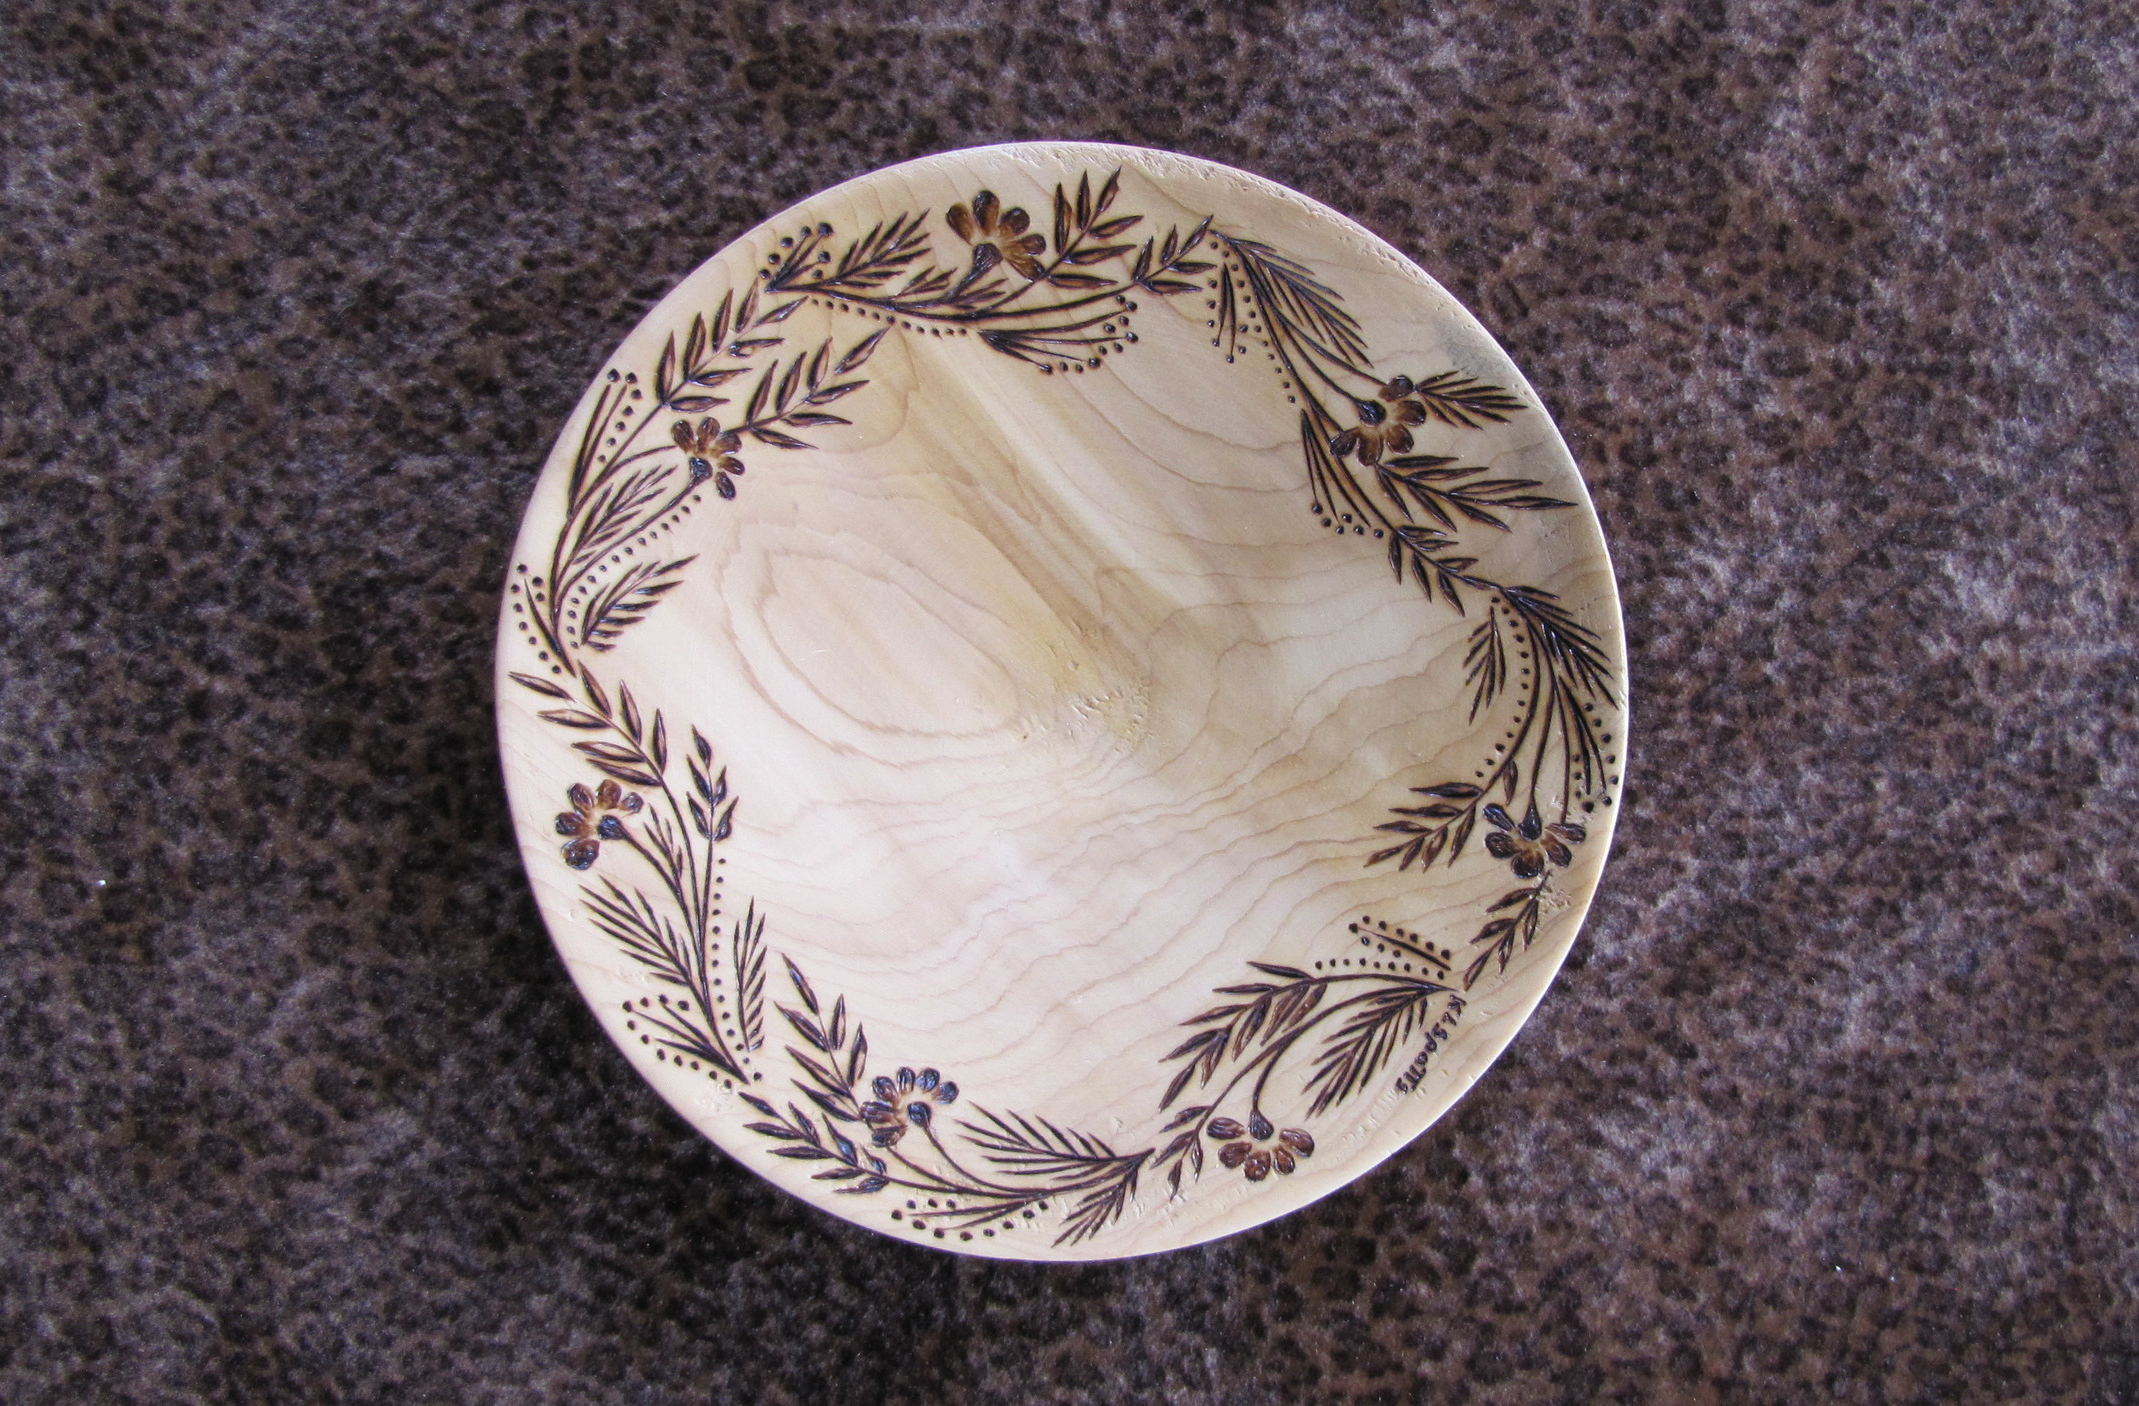 Wood-burned dish with leaves by Karen